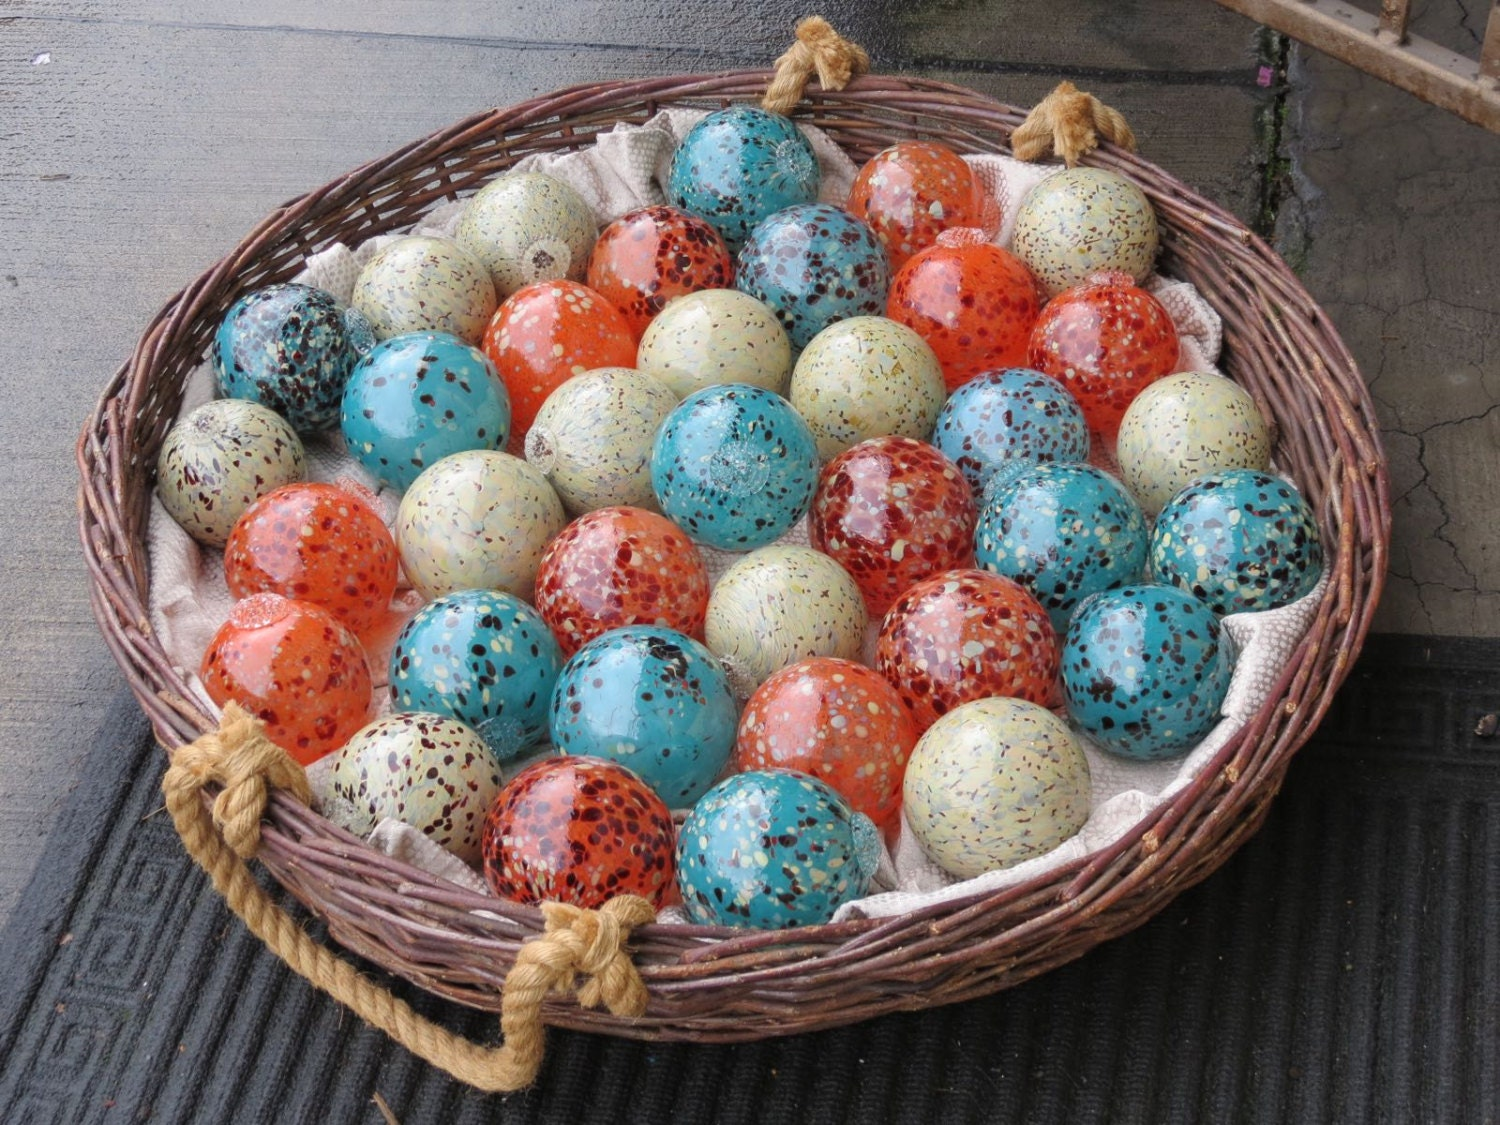 Speckled floats wholesale lot of blown glass balls